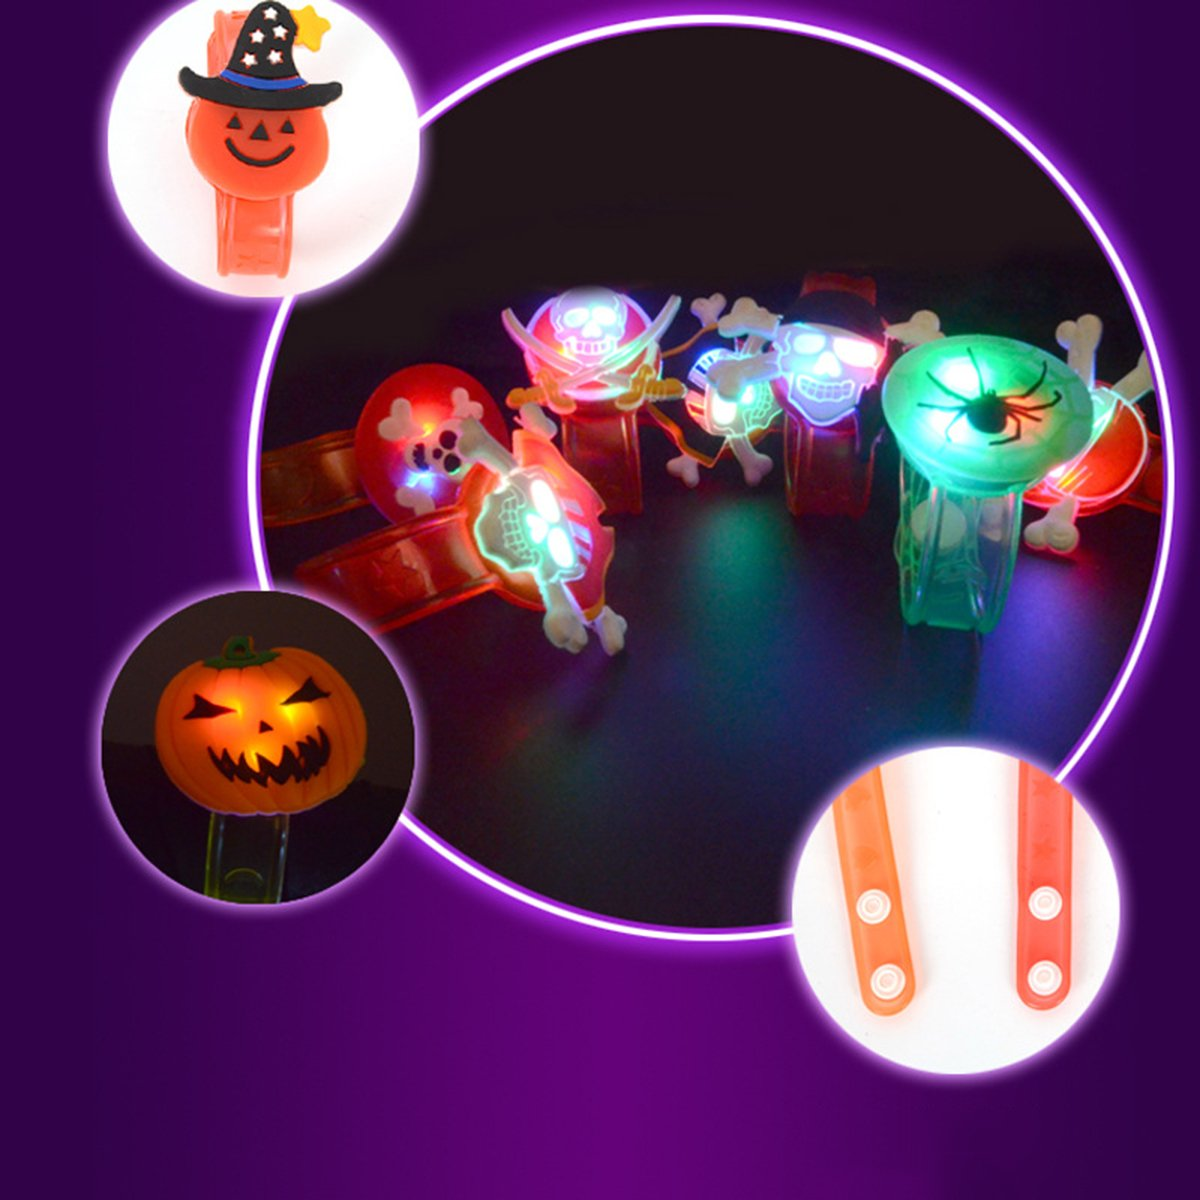 YeahiBaby 6Pcs Light up Bracelets Party Favor Light Up Wristbands for Halloween Chritmas Festival Dance Party by YeahiBaby (Image #3)